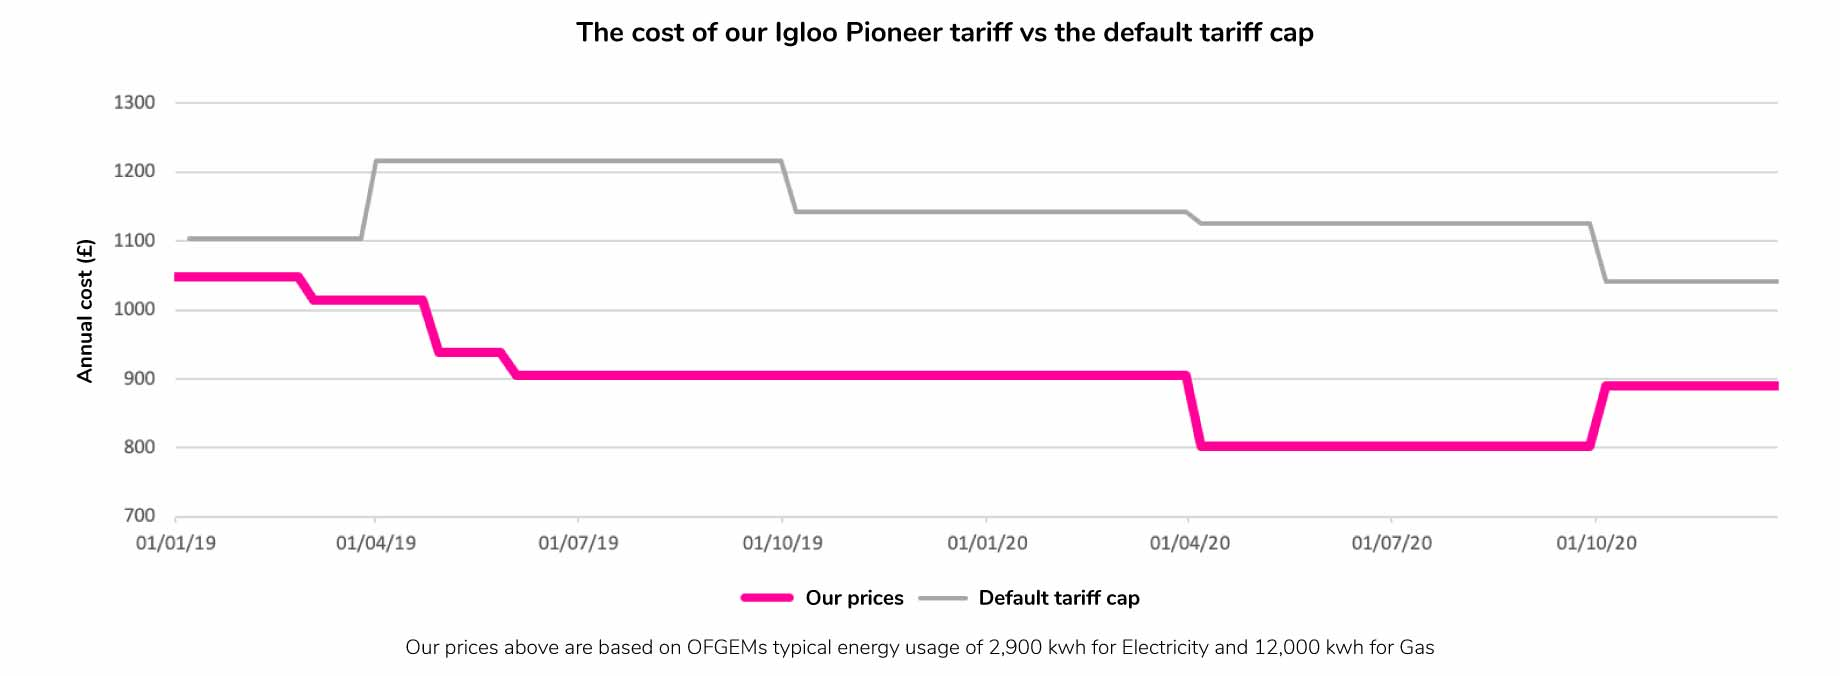 Igloo prices vs Default price cap - September 2020